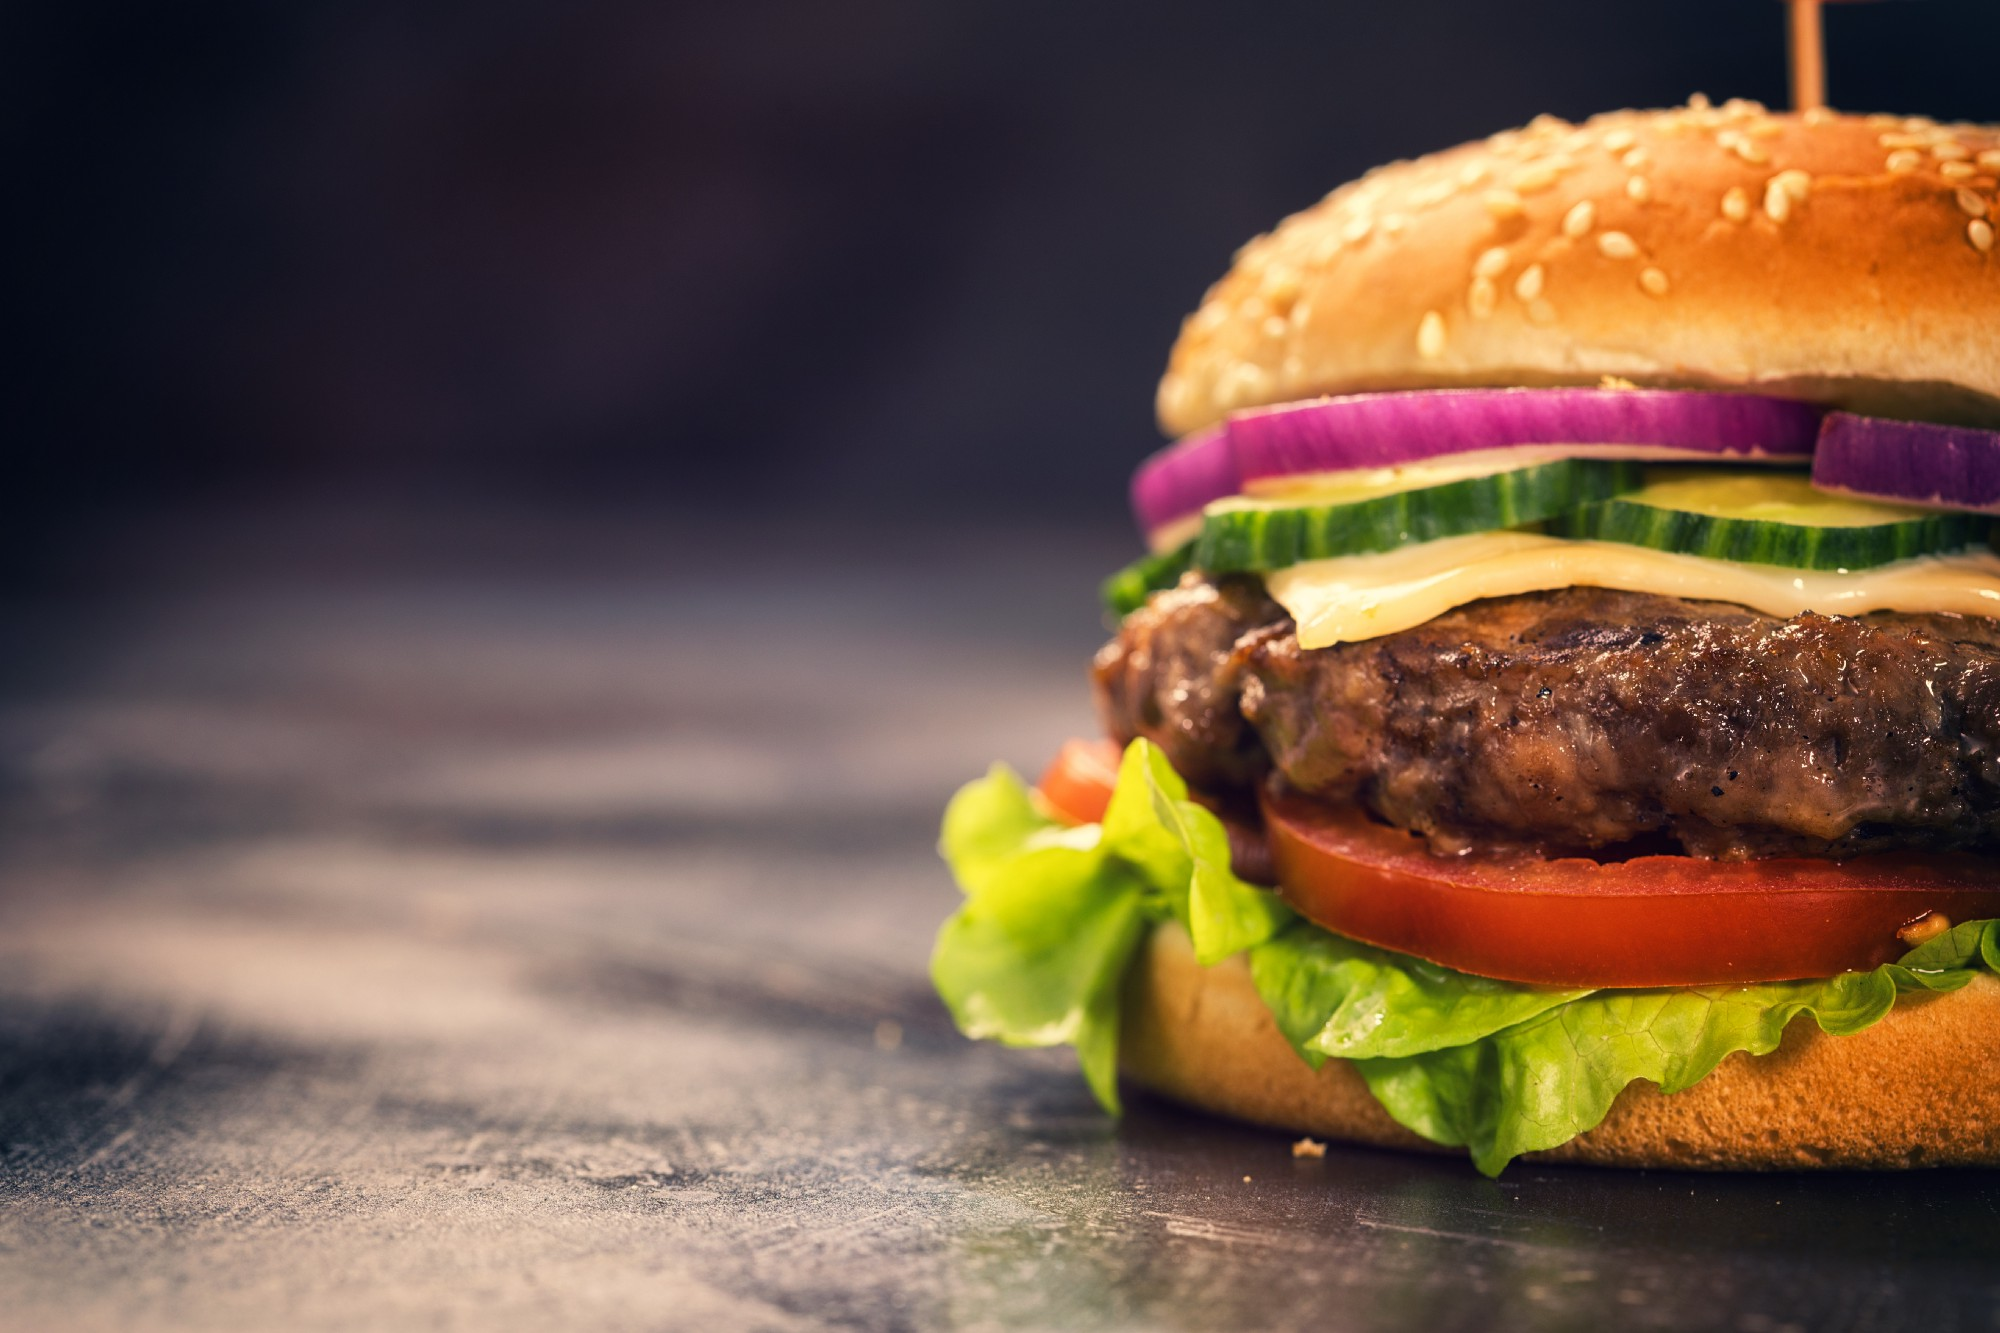 Close-up of a cheeseburger in a sesame seed bun with lettuce and sliced onions, tomatoes, and cucumbers on a black background